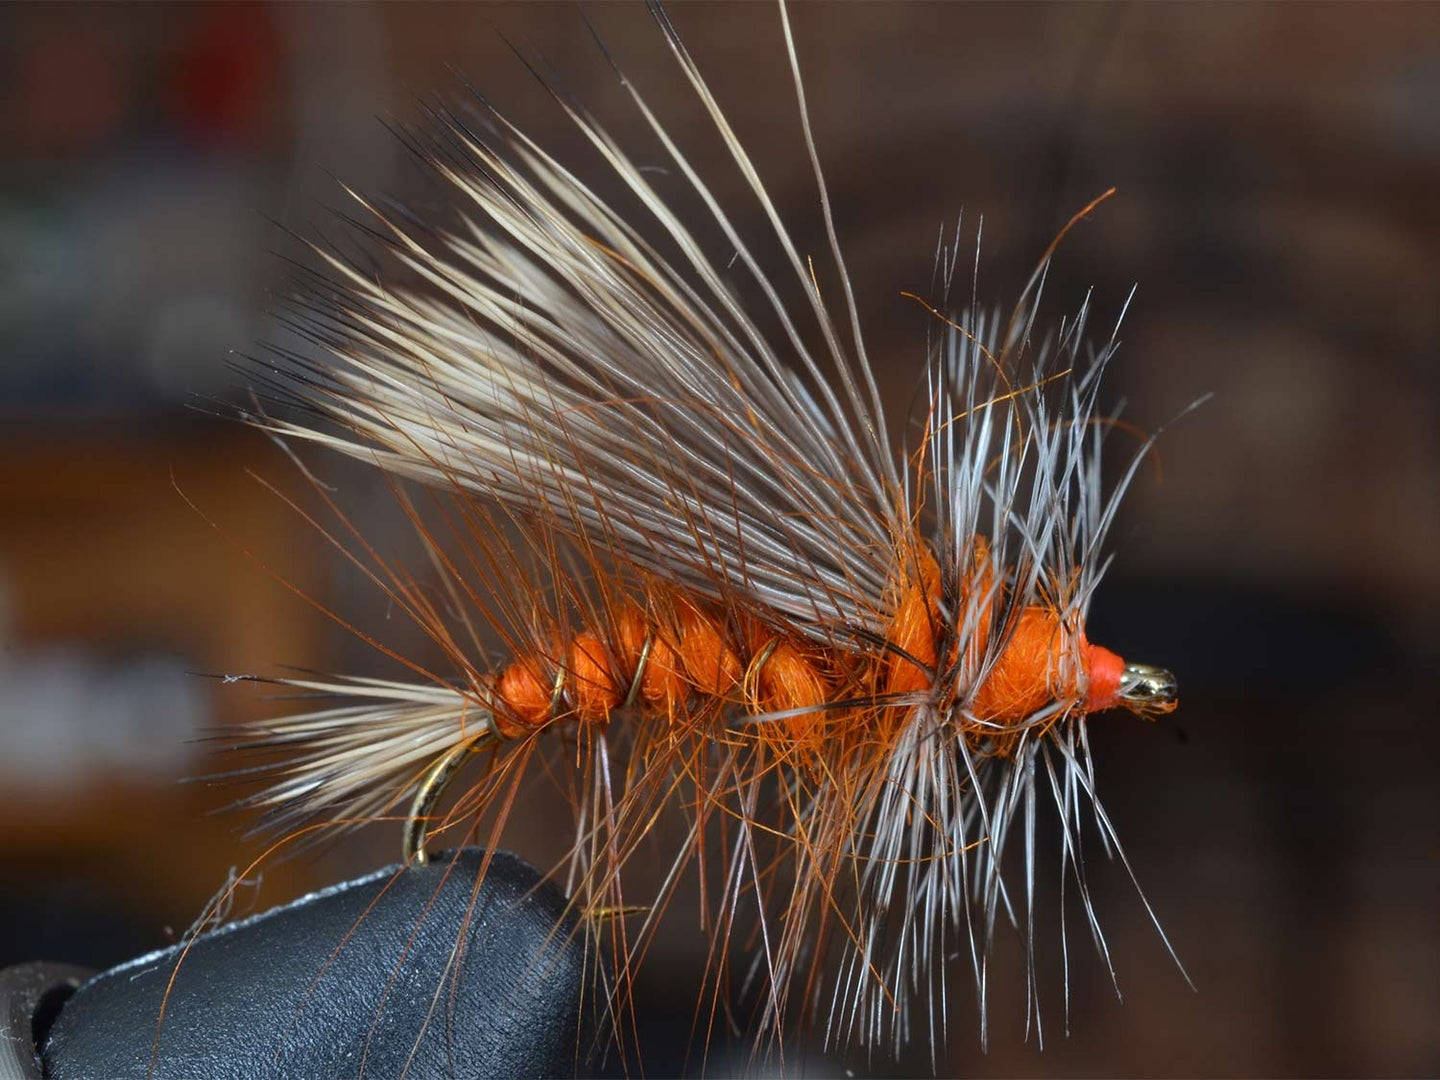 An orange and white spiked fuzzy stimulator fly lure in a vice.